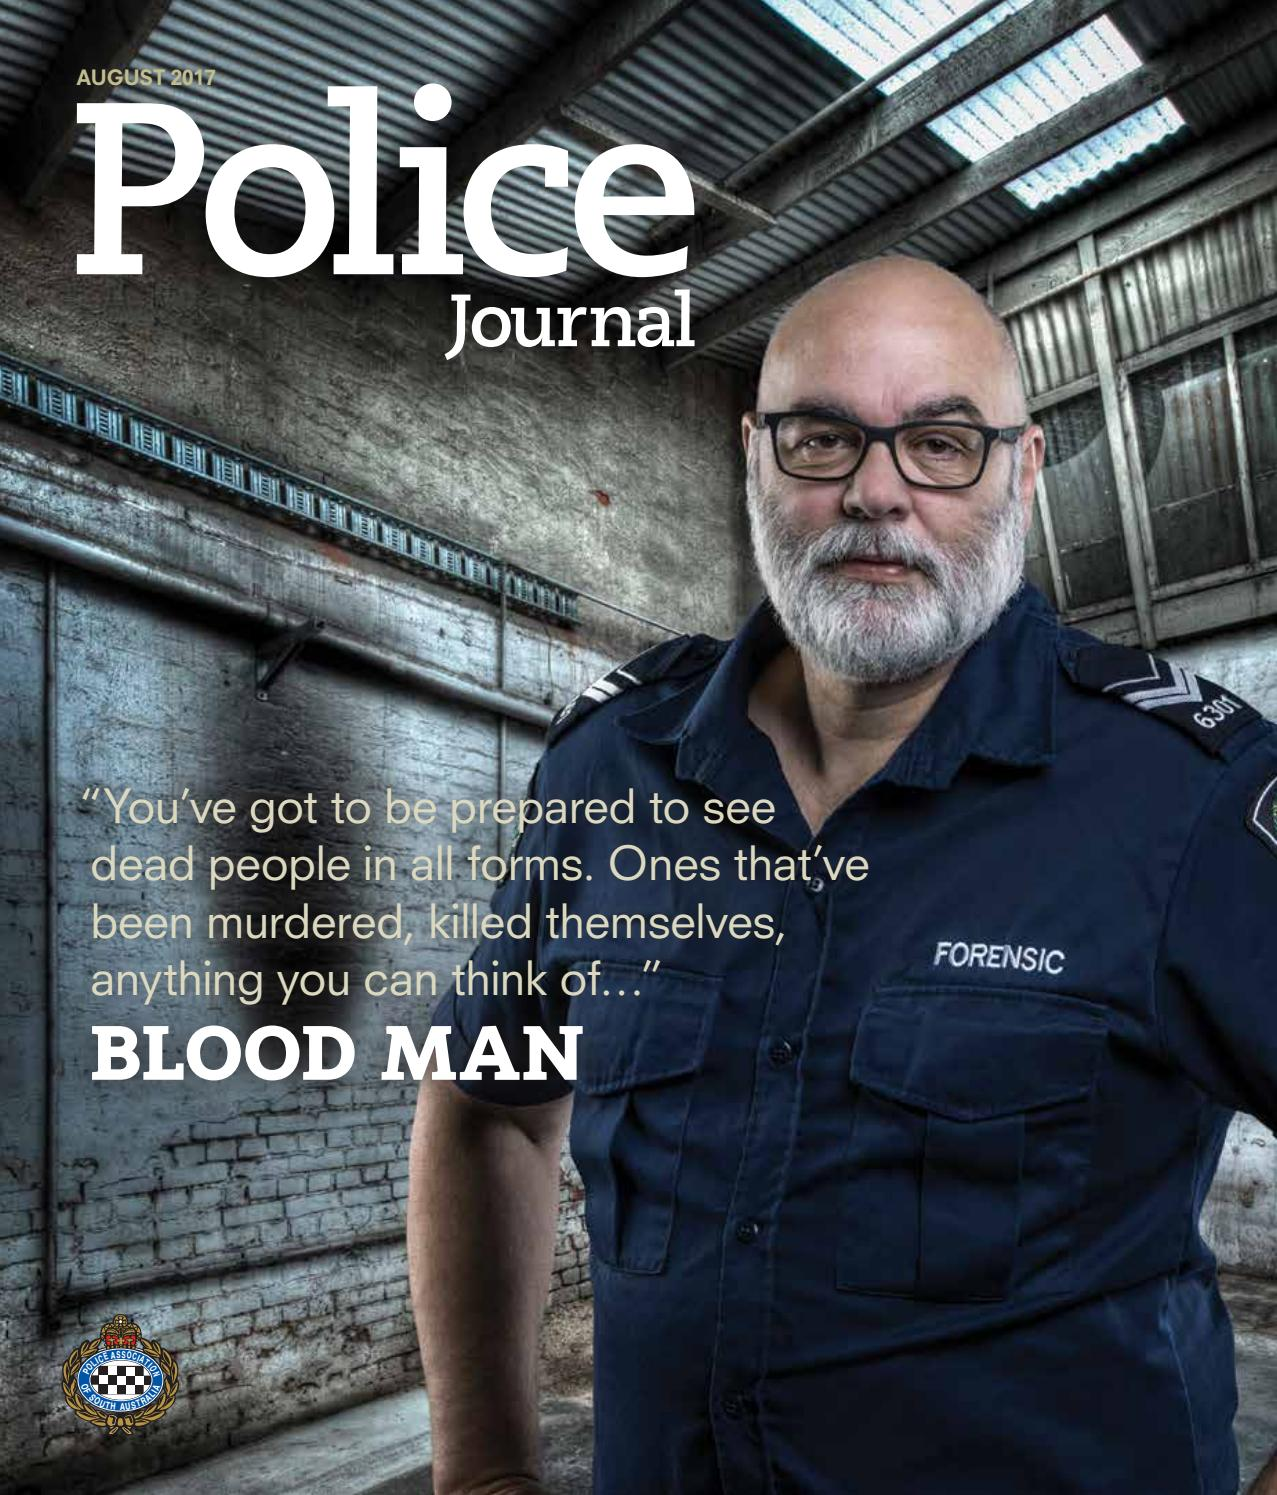 Police Journal August 2017